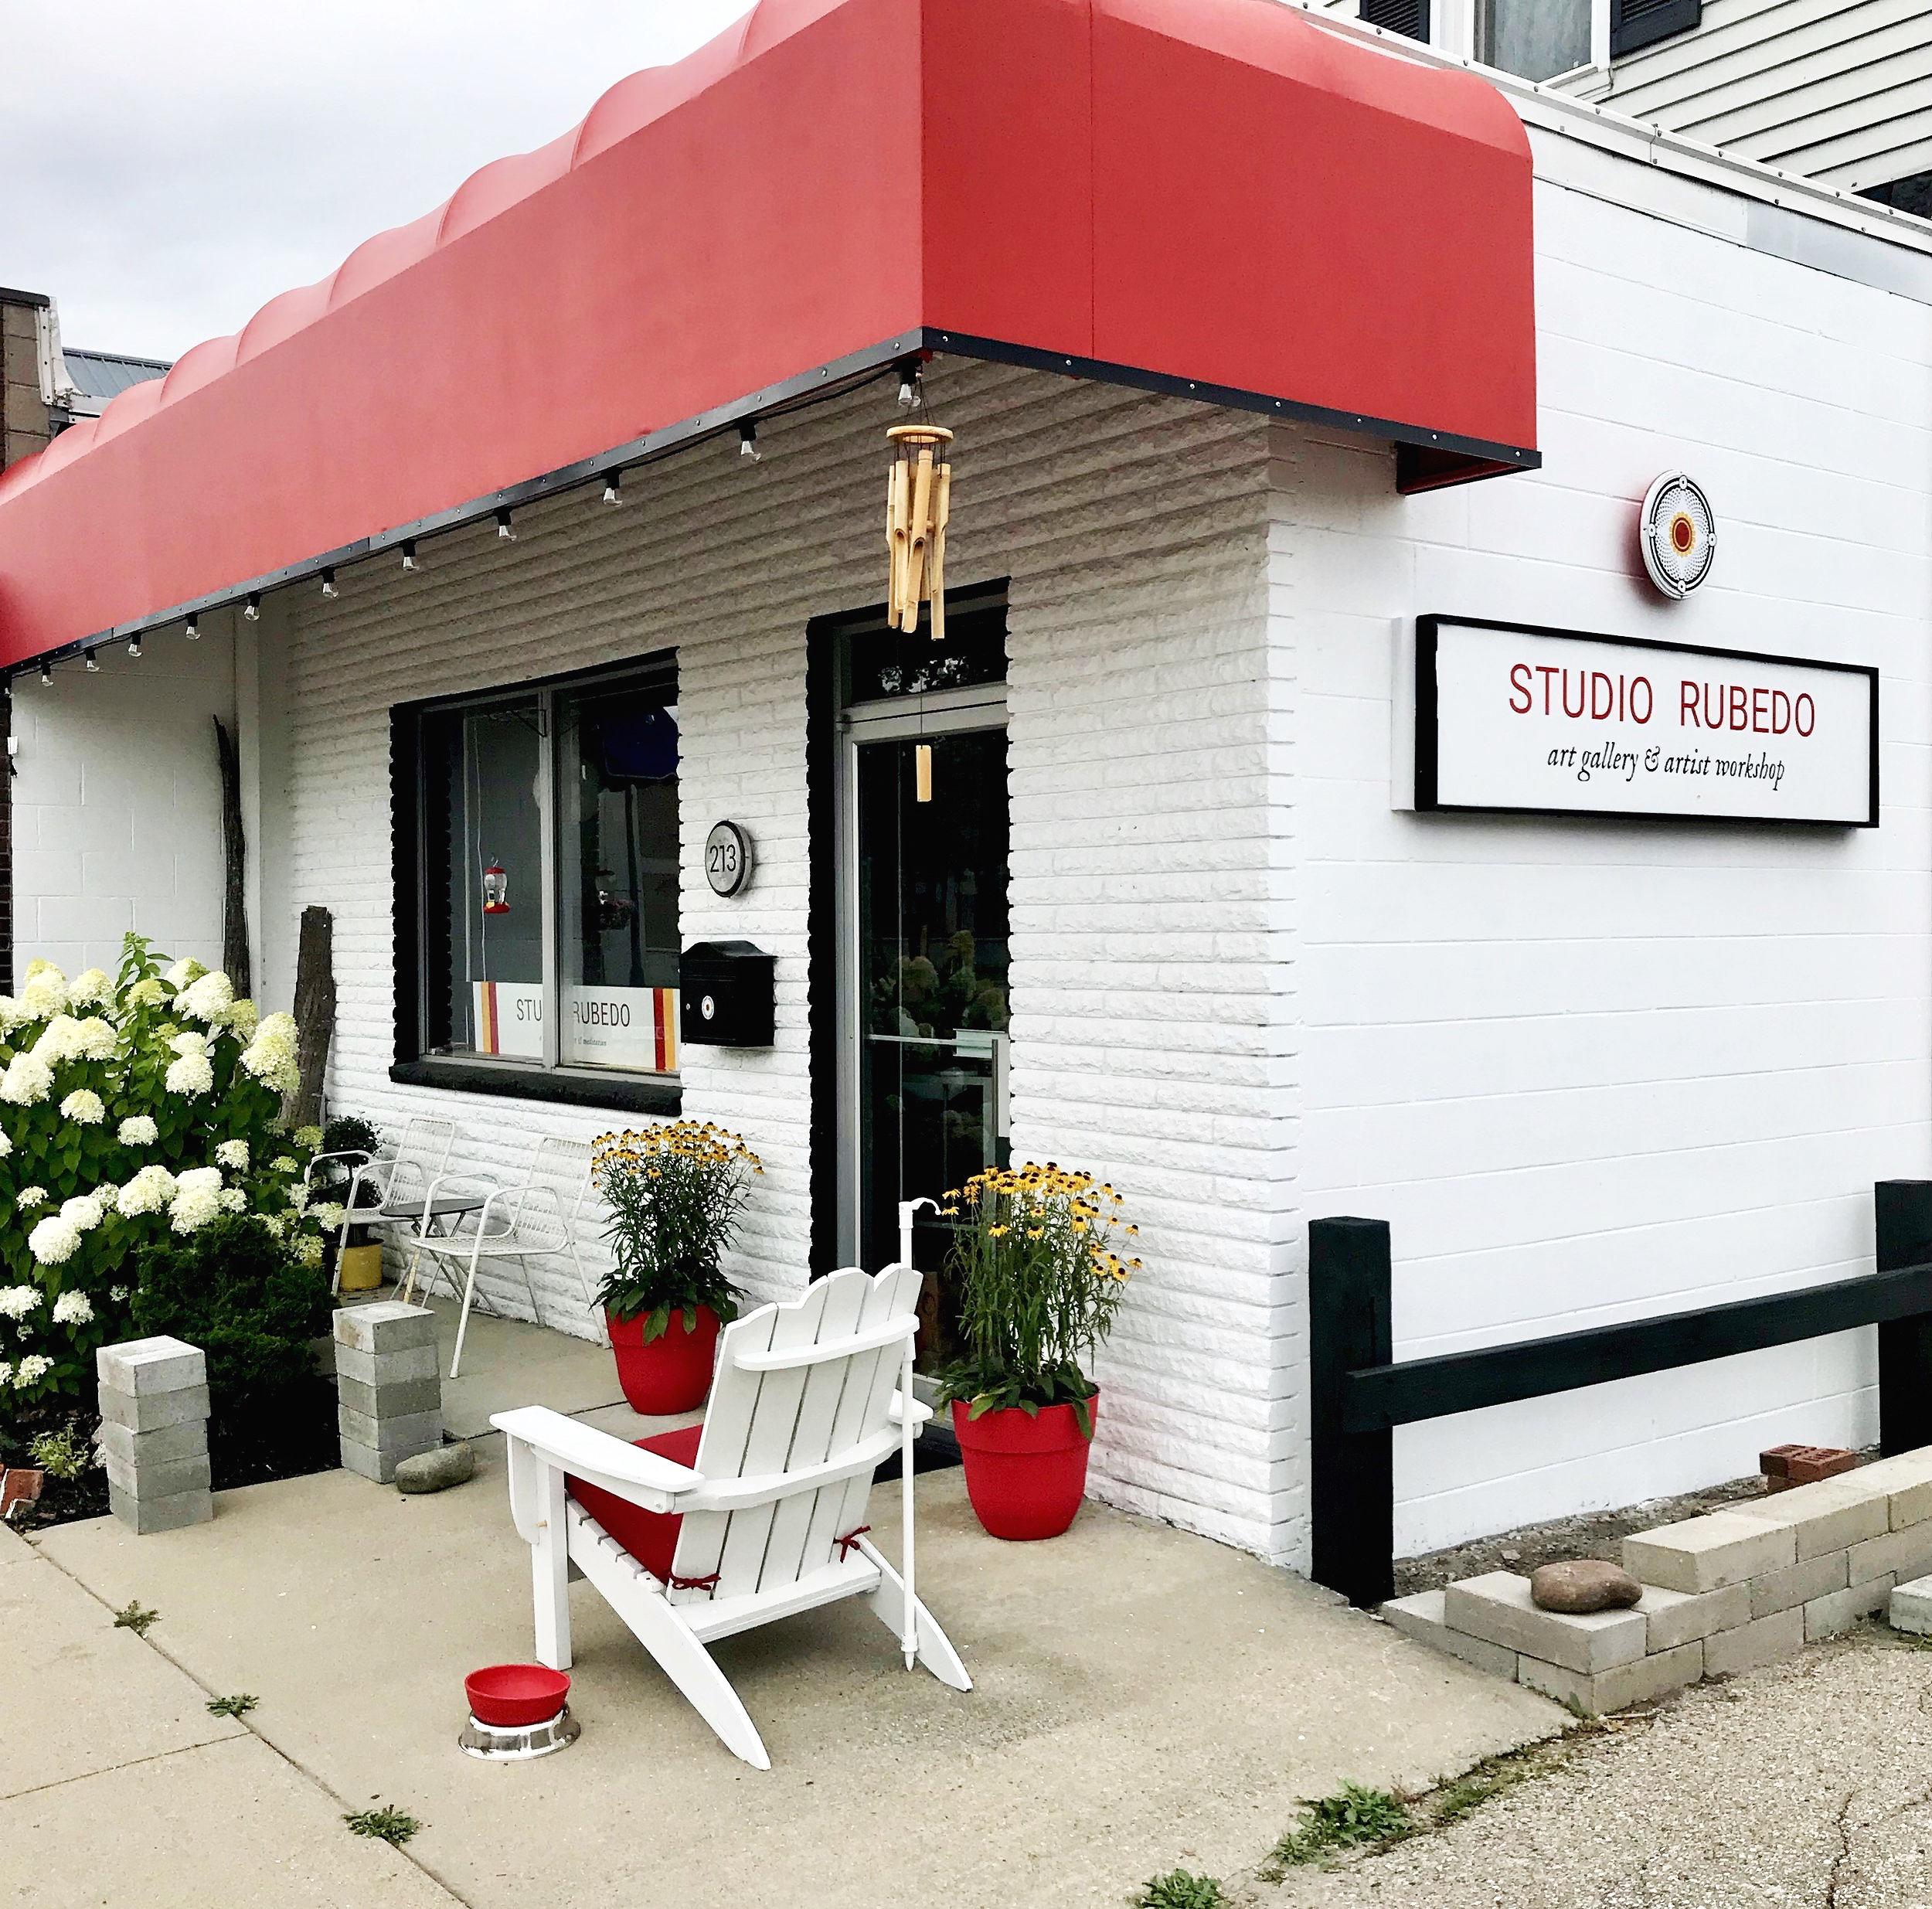 Studio Rubedo's new location at 213 West Chisholm in downtown Alpena, MI. Exterior and interior renovations are currently in progress.